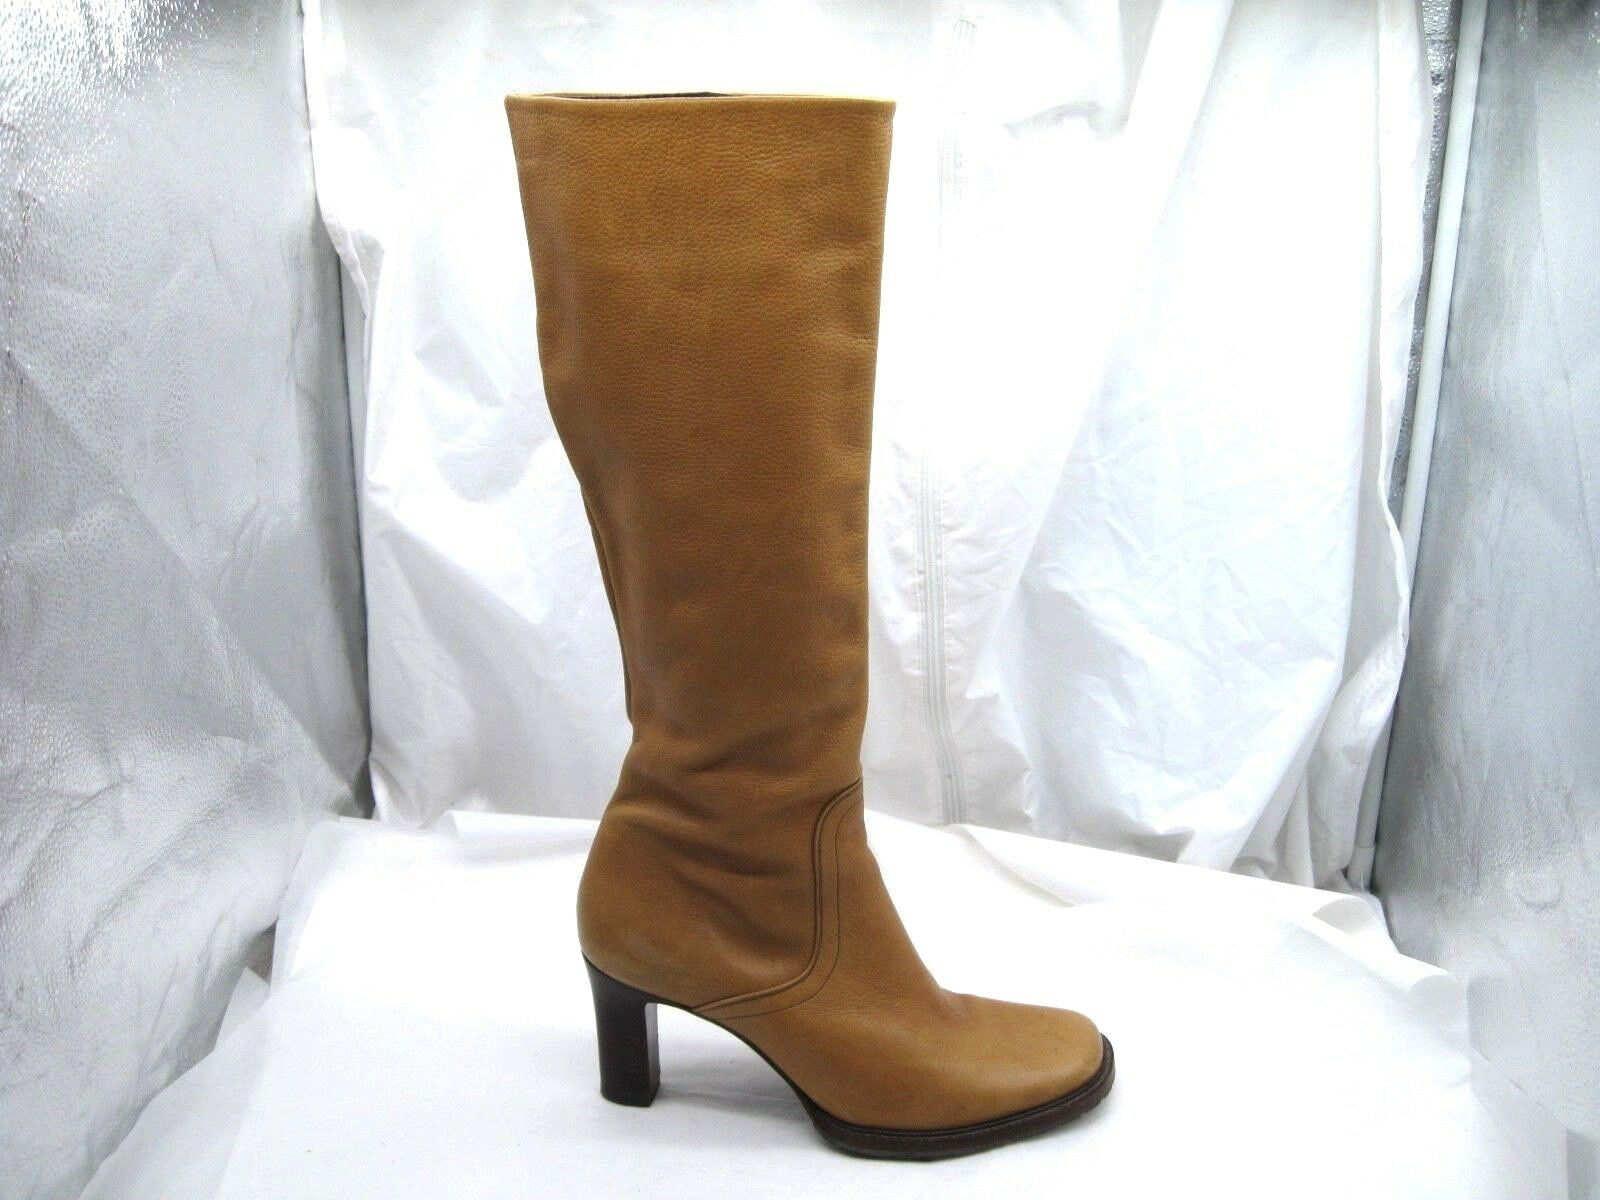 200 + Cole Haan Country 10B 41 caramel brown knee high Womens Boots shoes D13003